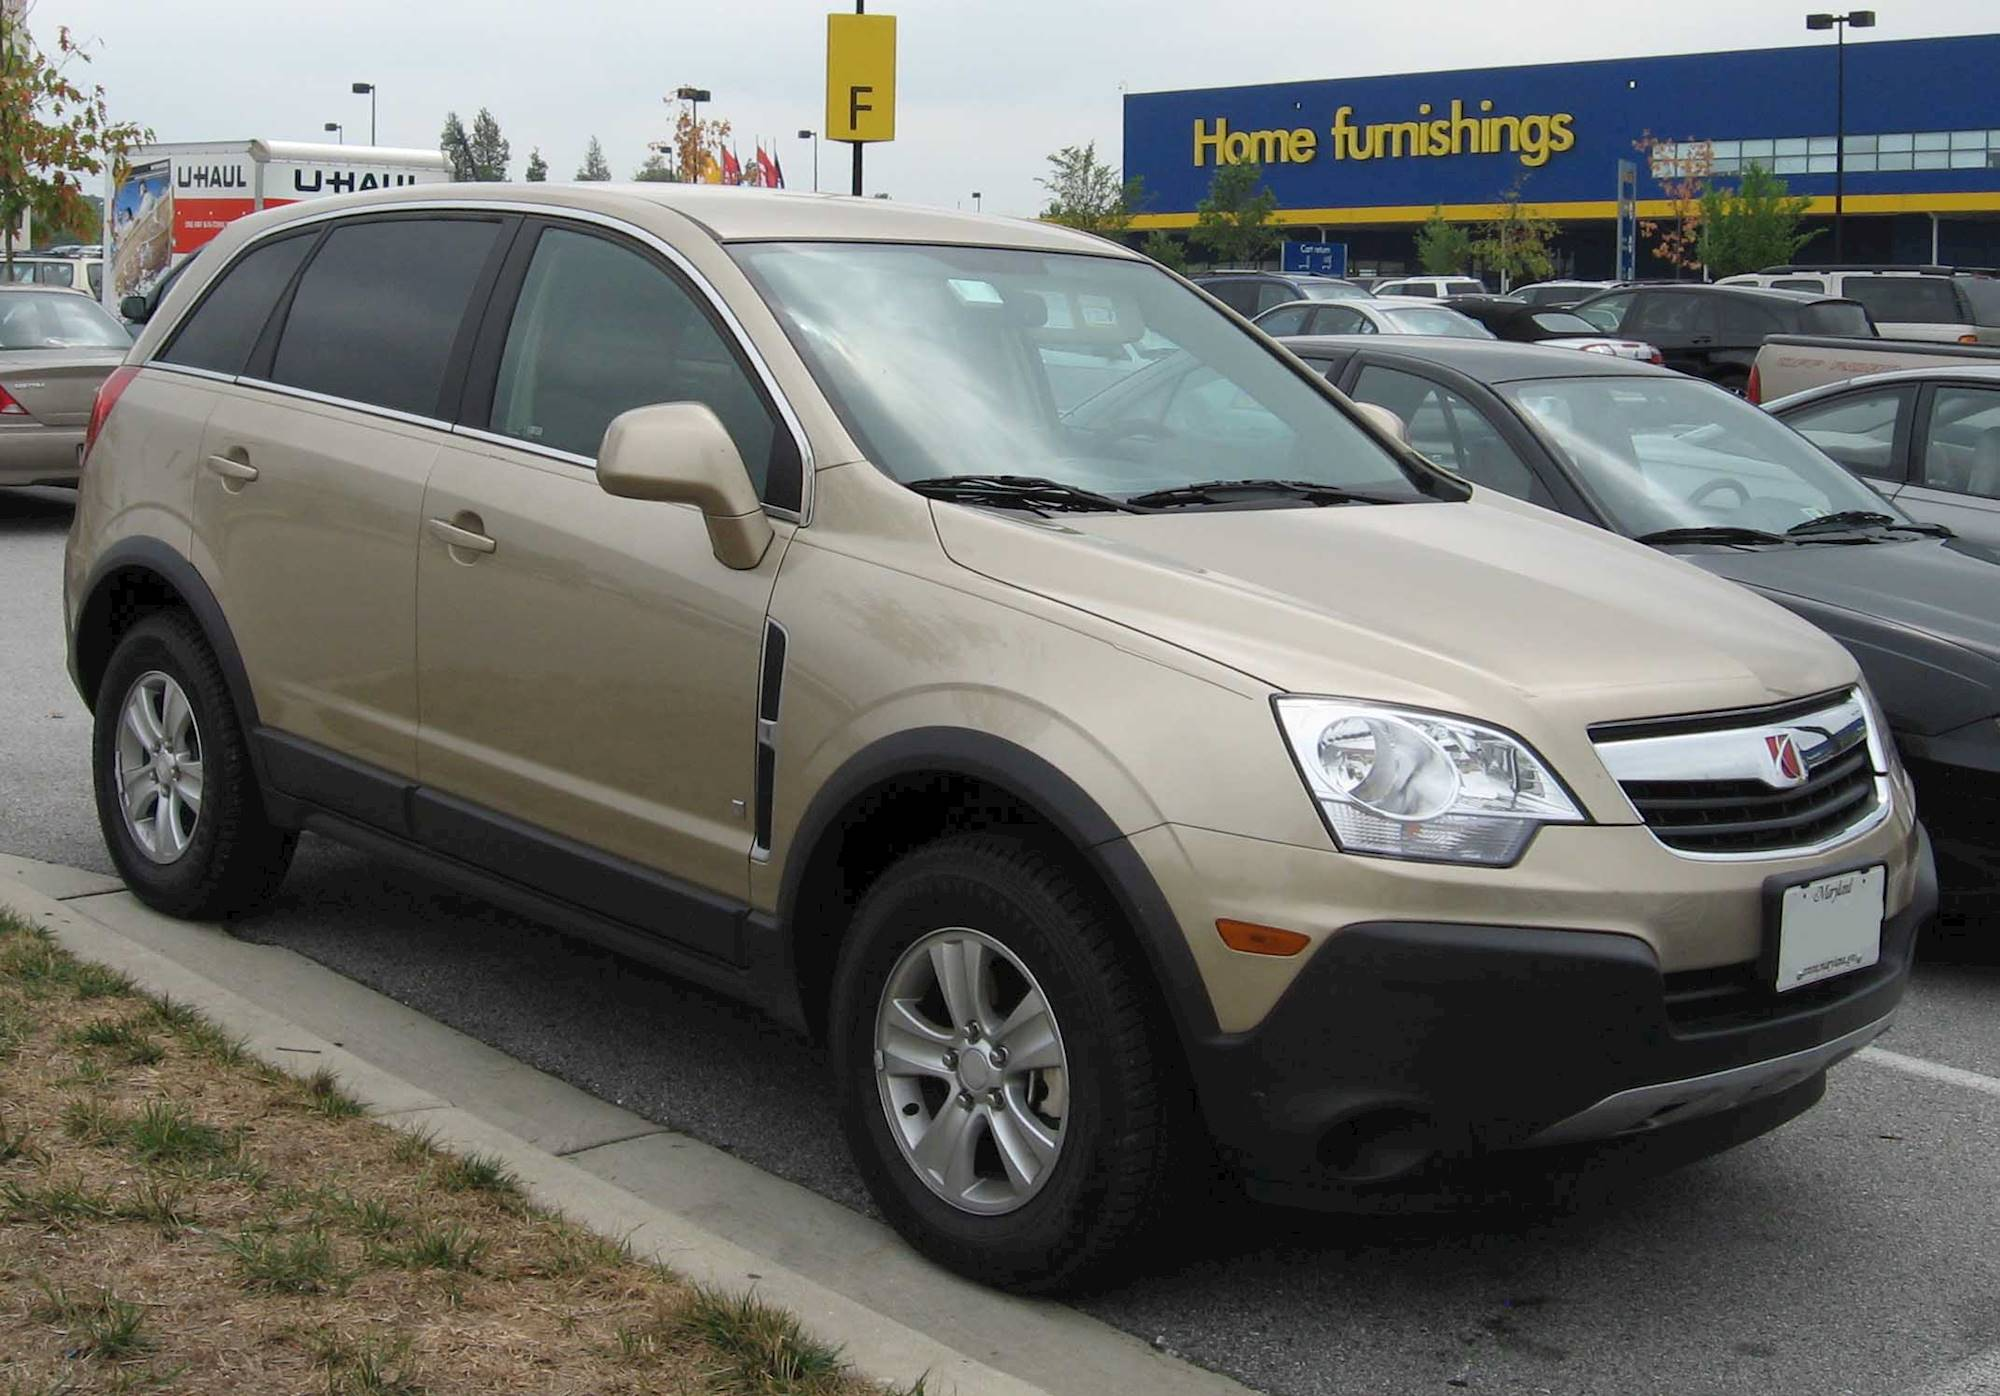 vue saturn 2008 xe v6 suv awd line 6l auto 4dr cars